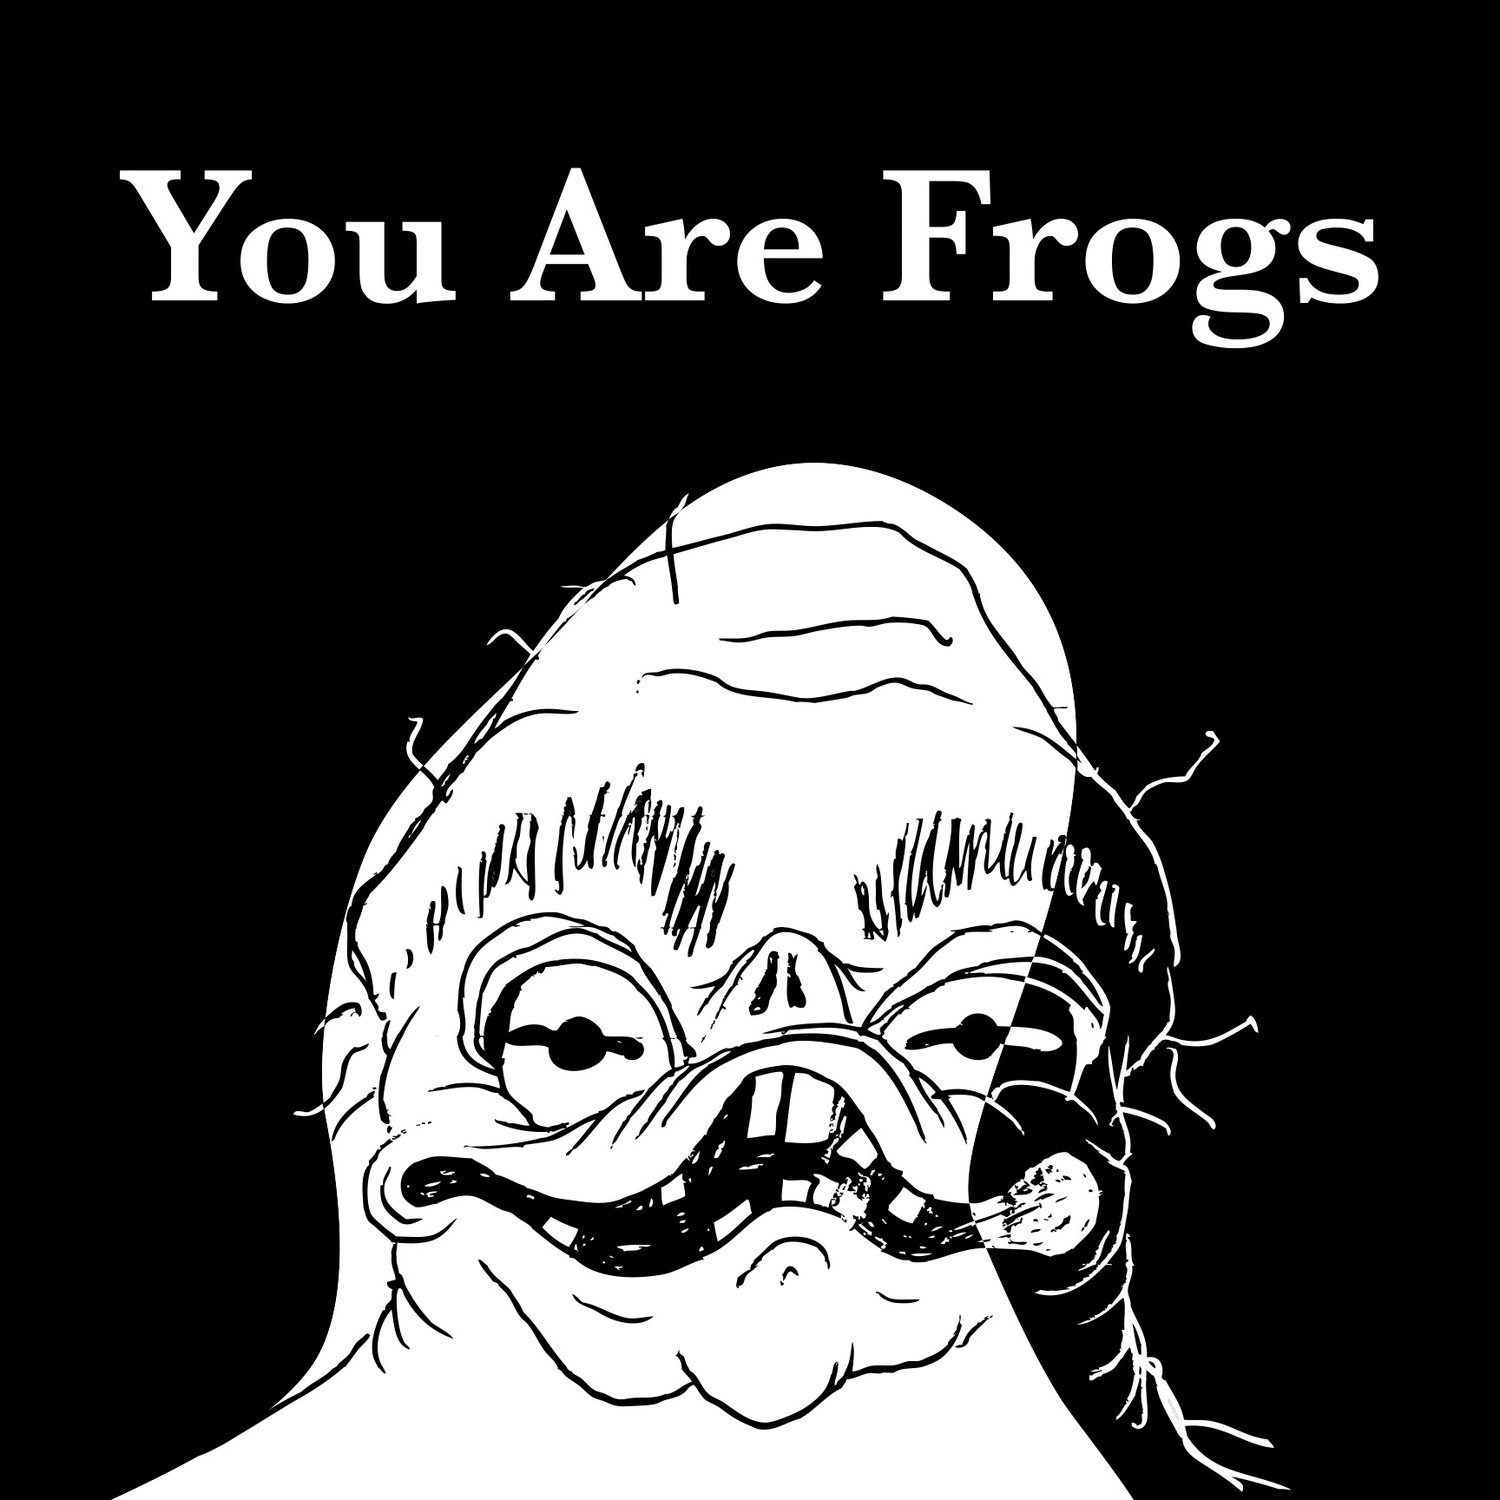 You Are Frogs